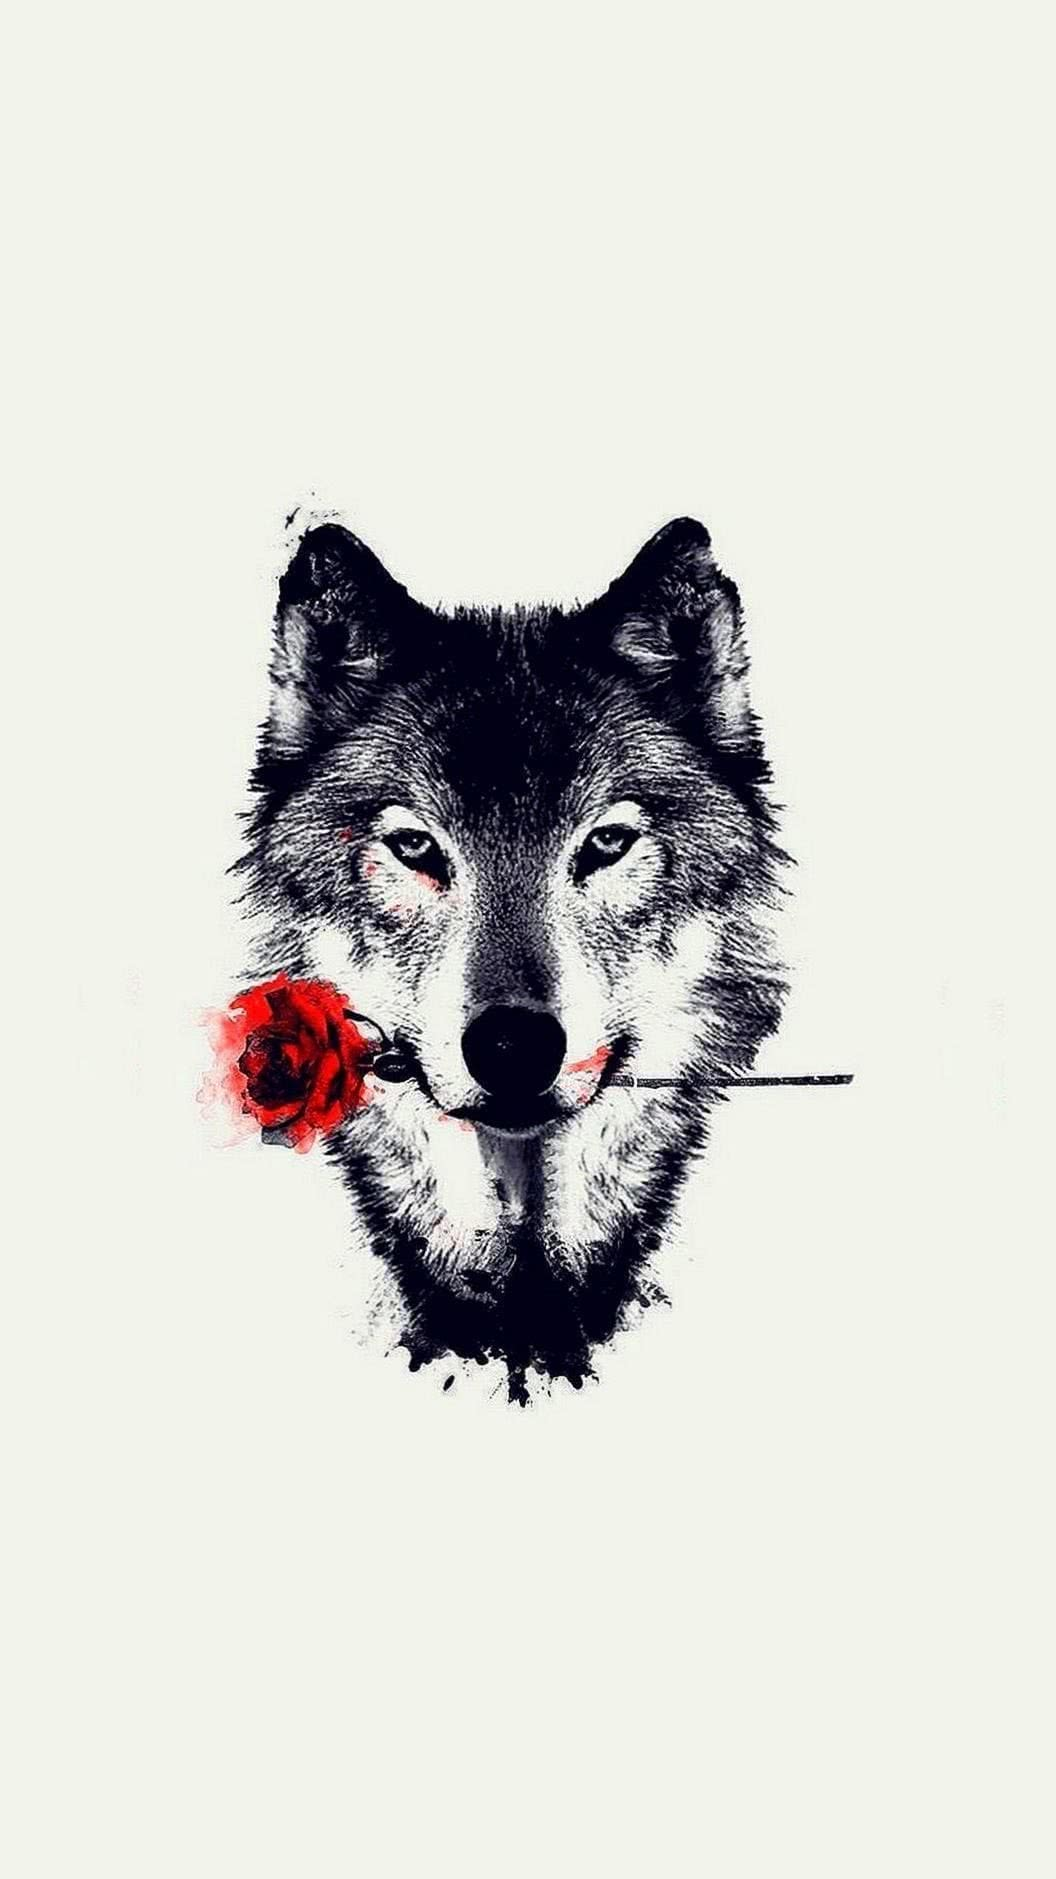 Best Wolf Wallpaper For Mobile